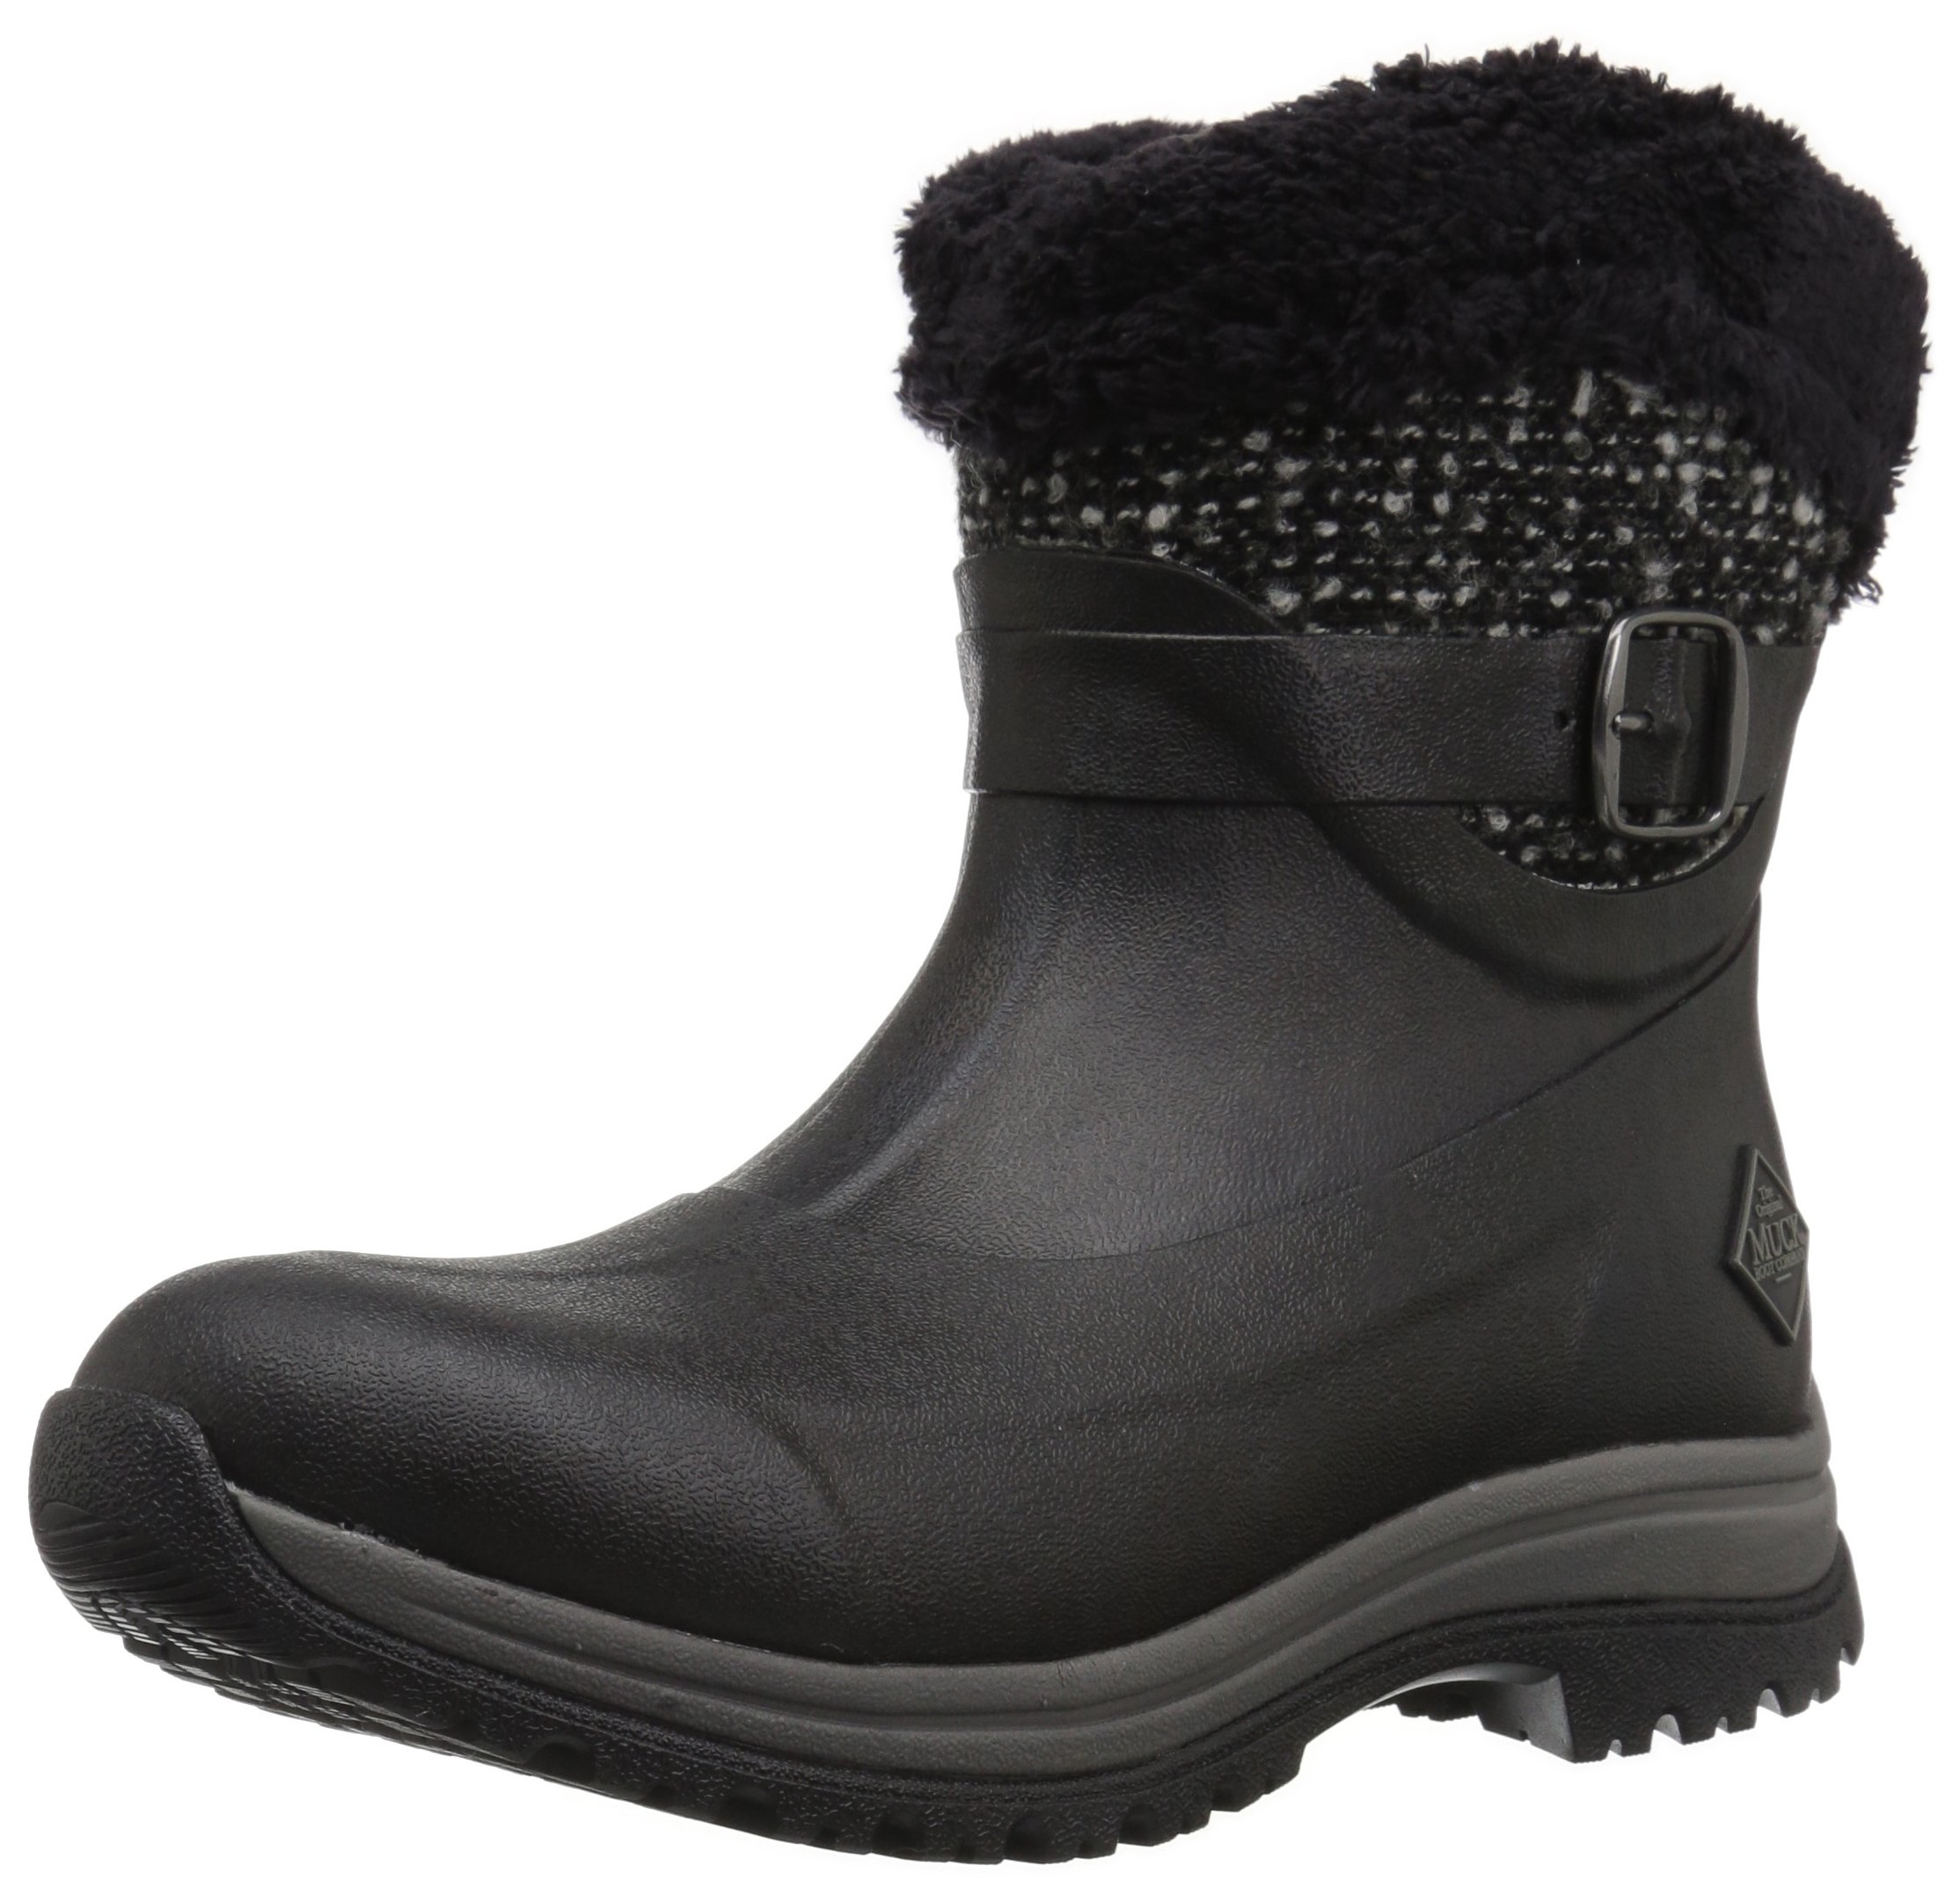 Muck Boot Women's Apres (Ankle) Supreme Work Boot, Black, 8 M US by Muck Boot